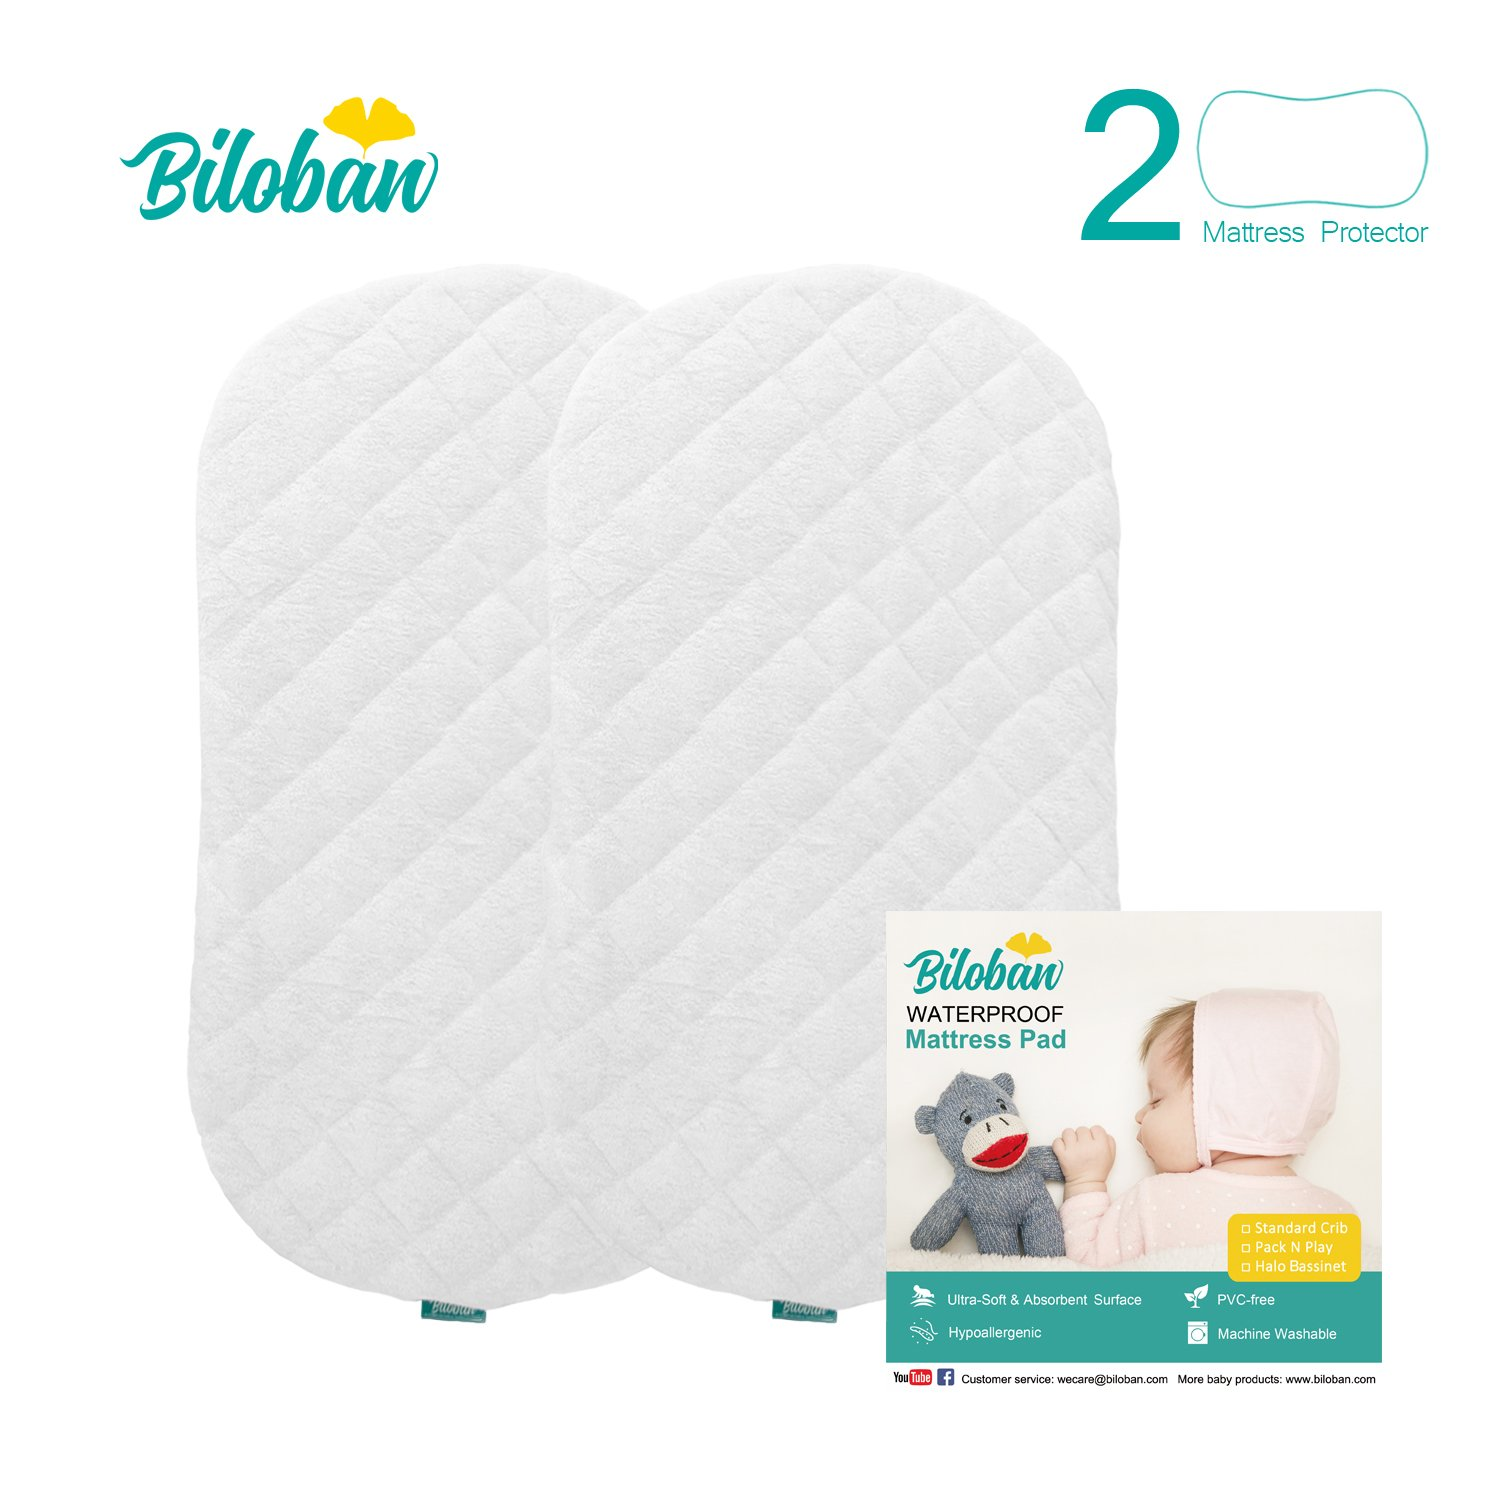 Bassinet Mattress Pad 2 Pack Bamboo Waterproof, Perfectly Fits for Halo Swivel Sleeper Bassinet Mattress,Quiet and Washer & Dryer Friendly Fitted Bassinet Sheet for Baby